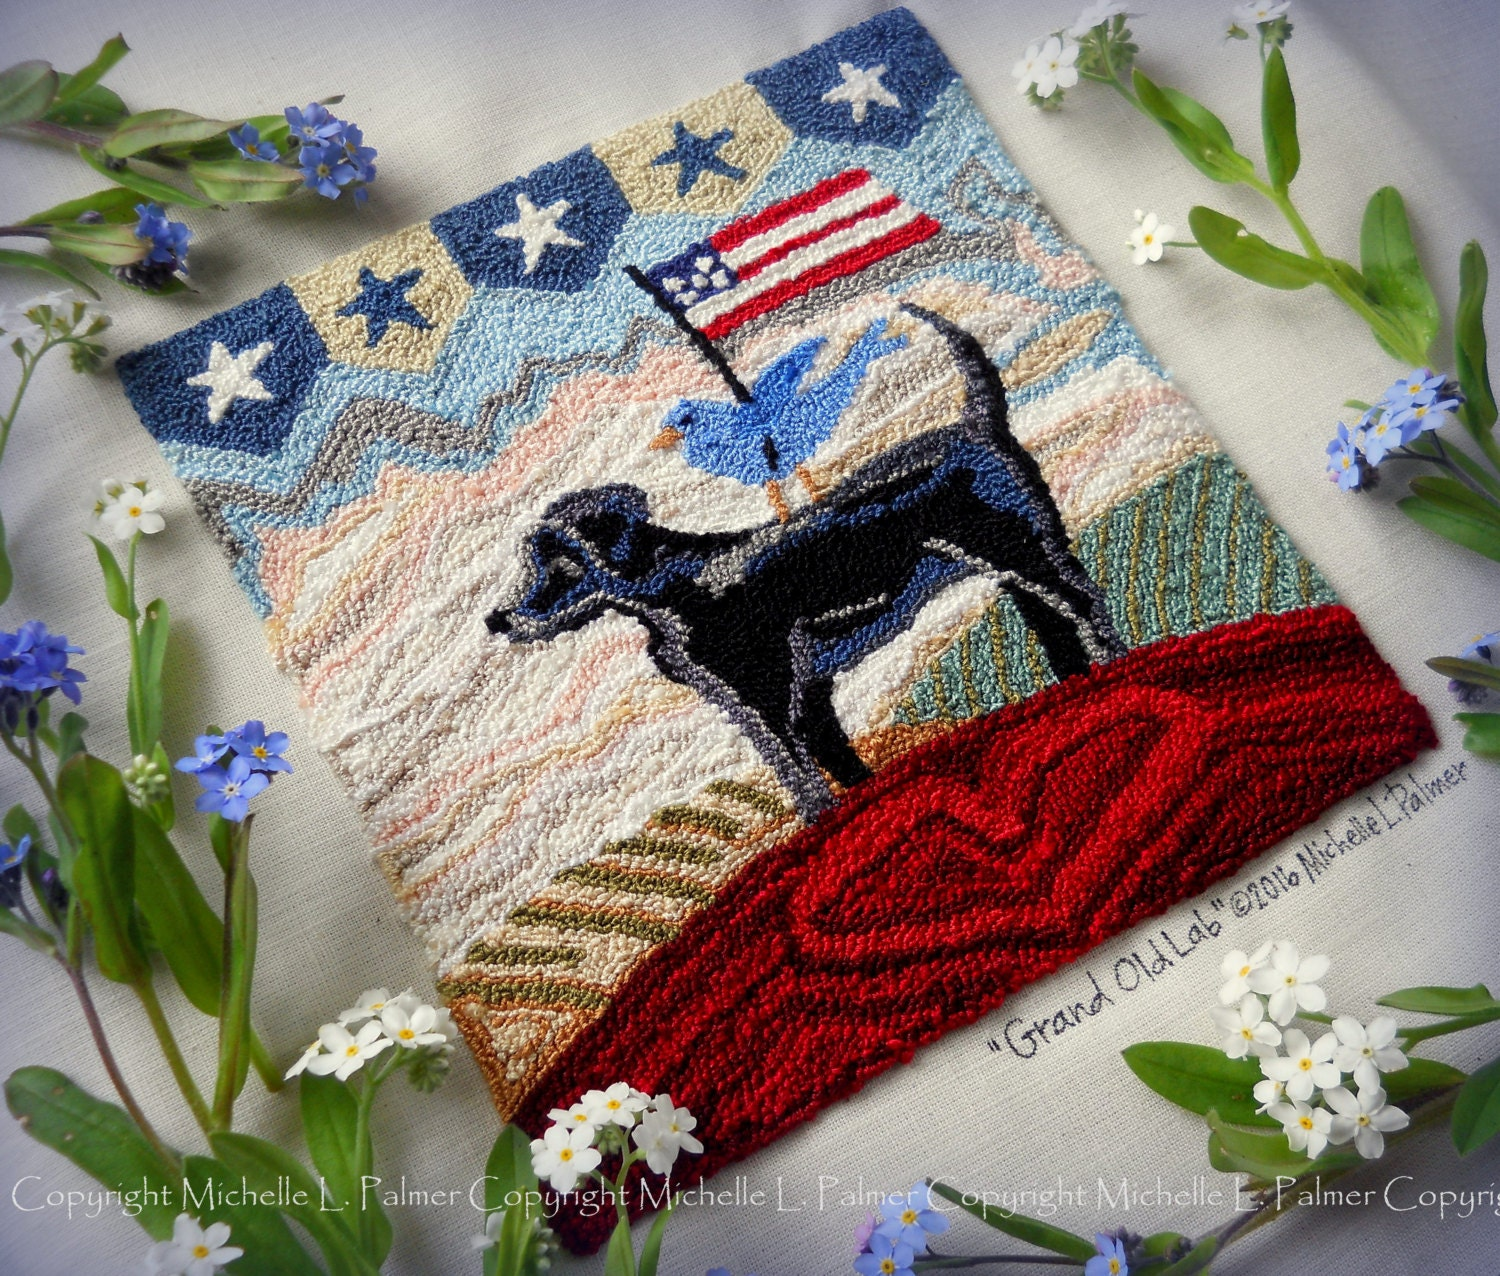 Rug Dogs Embroidery Designs: Grand Old Lab Patriotic Labrador Dog Punch Needle Embroidery